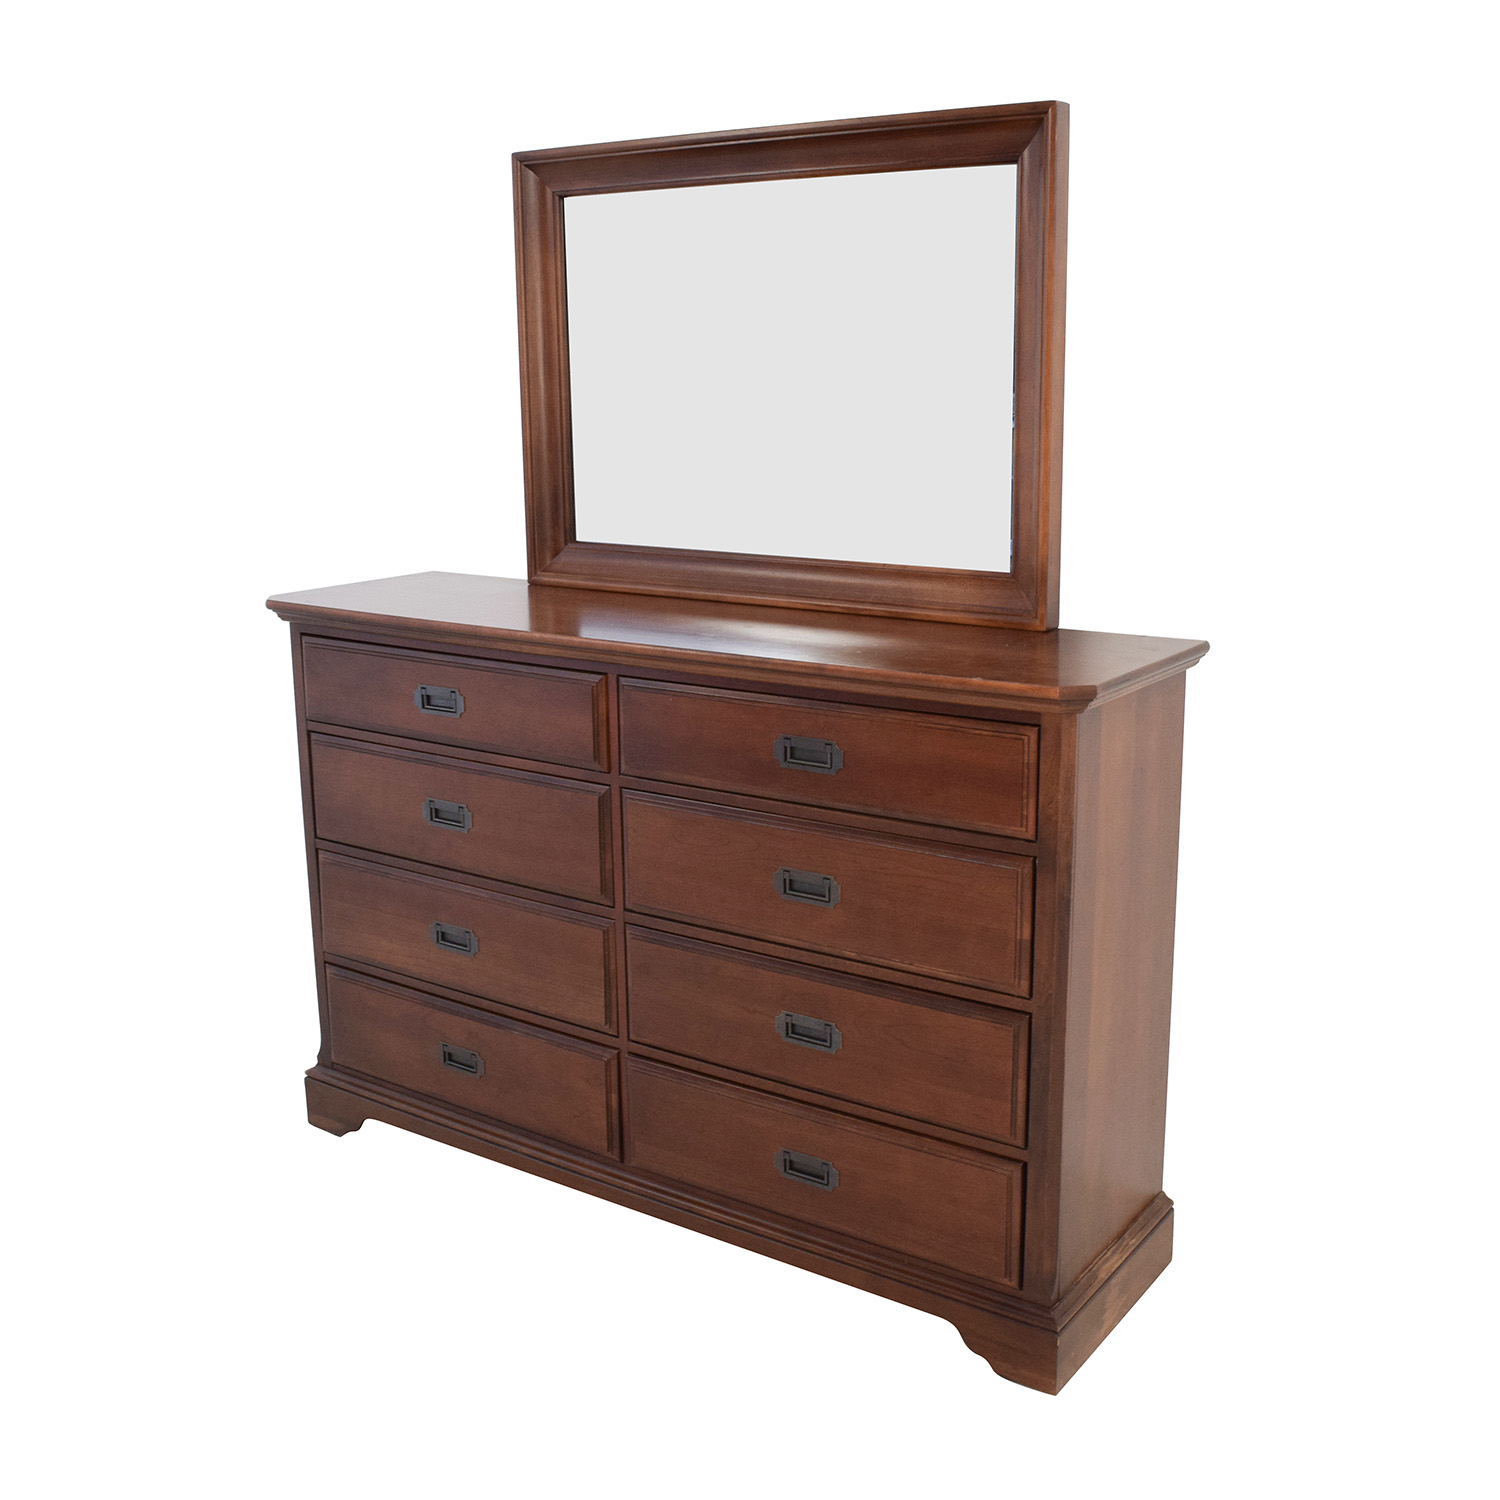 buy Vaughan Bassett Hardwood Dresser with Mirror Dressers